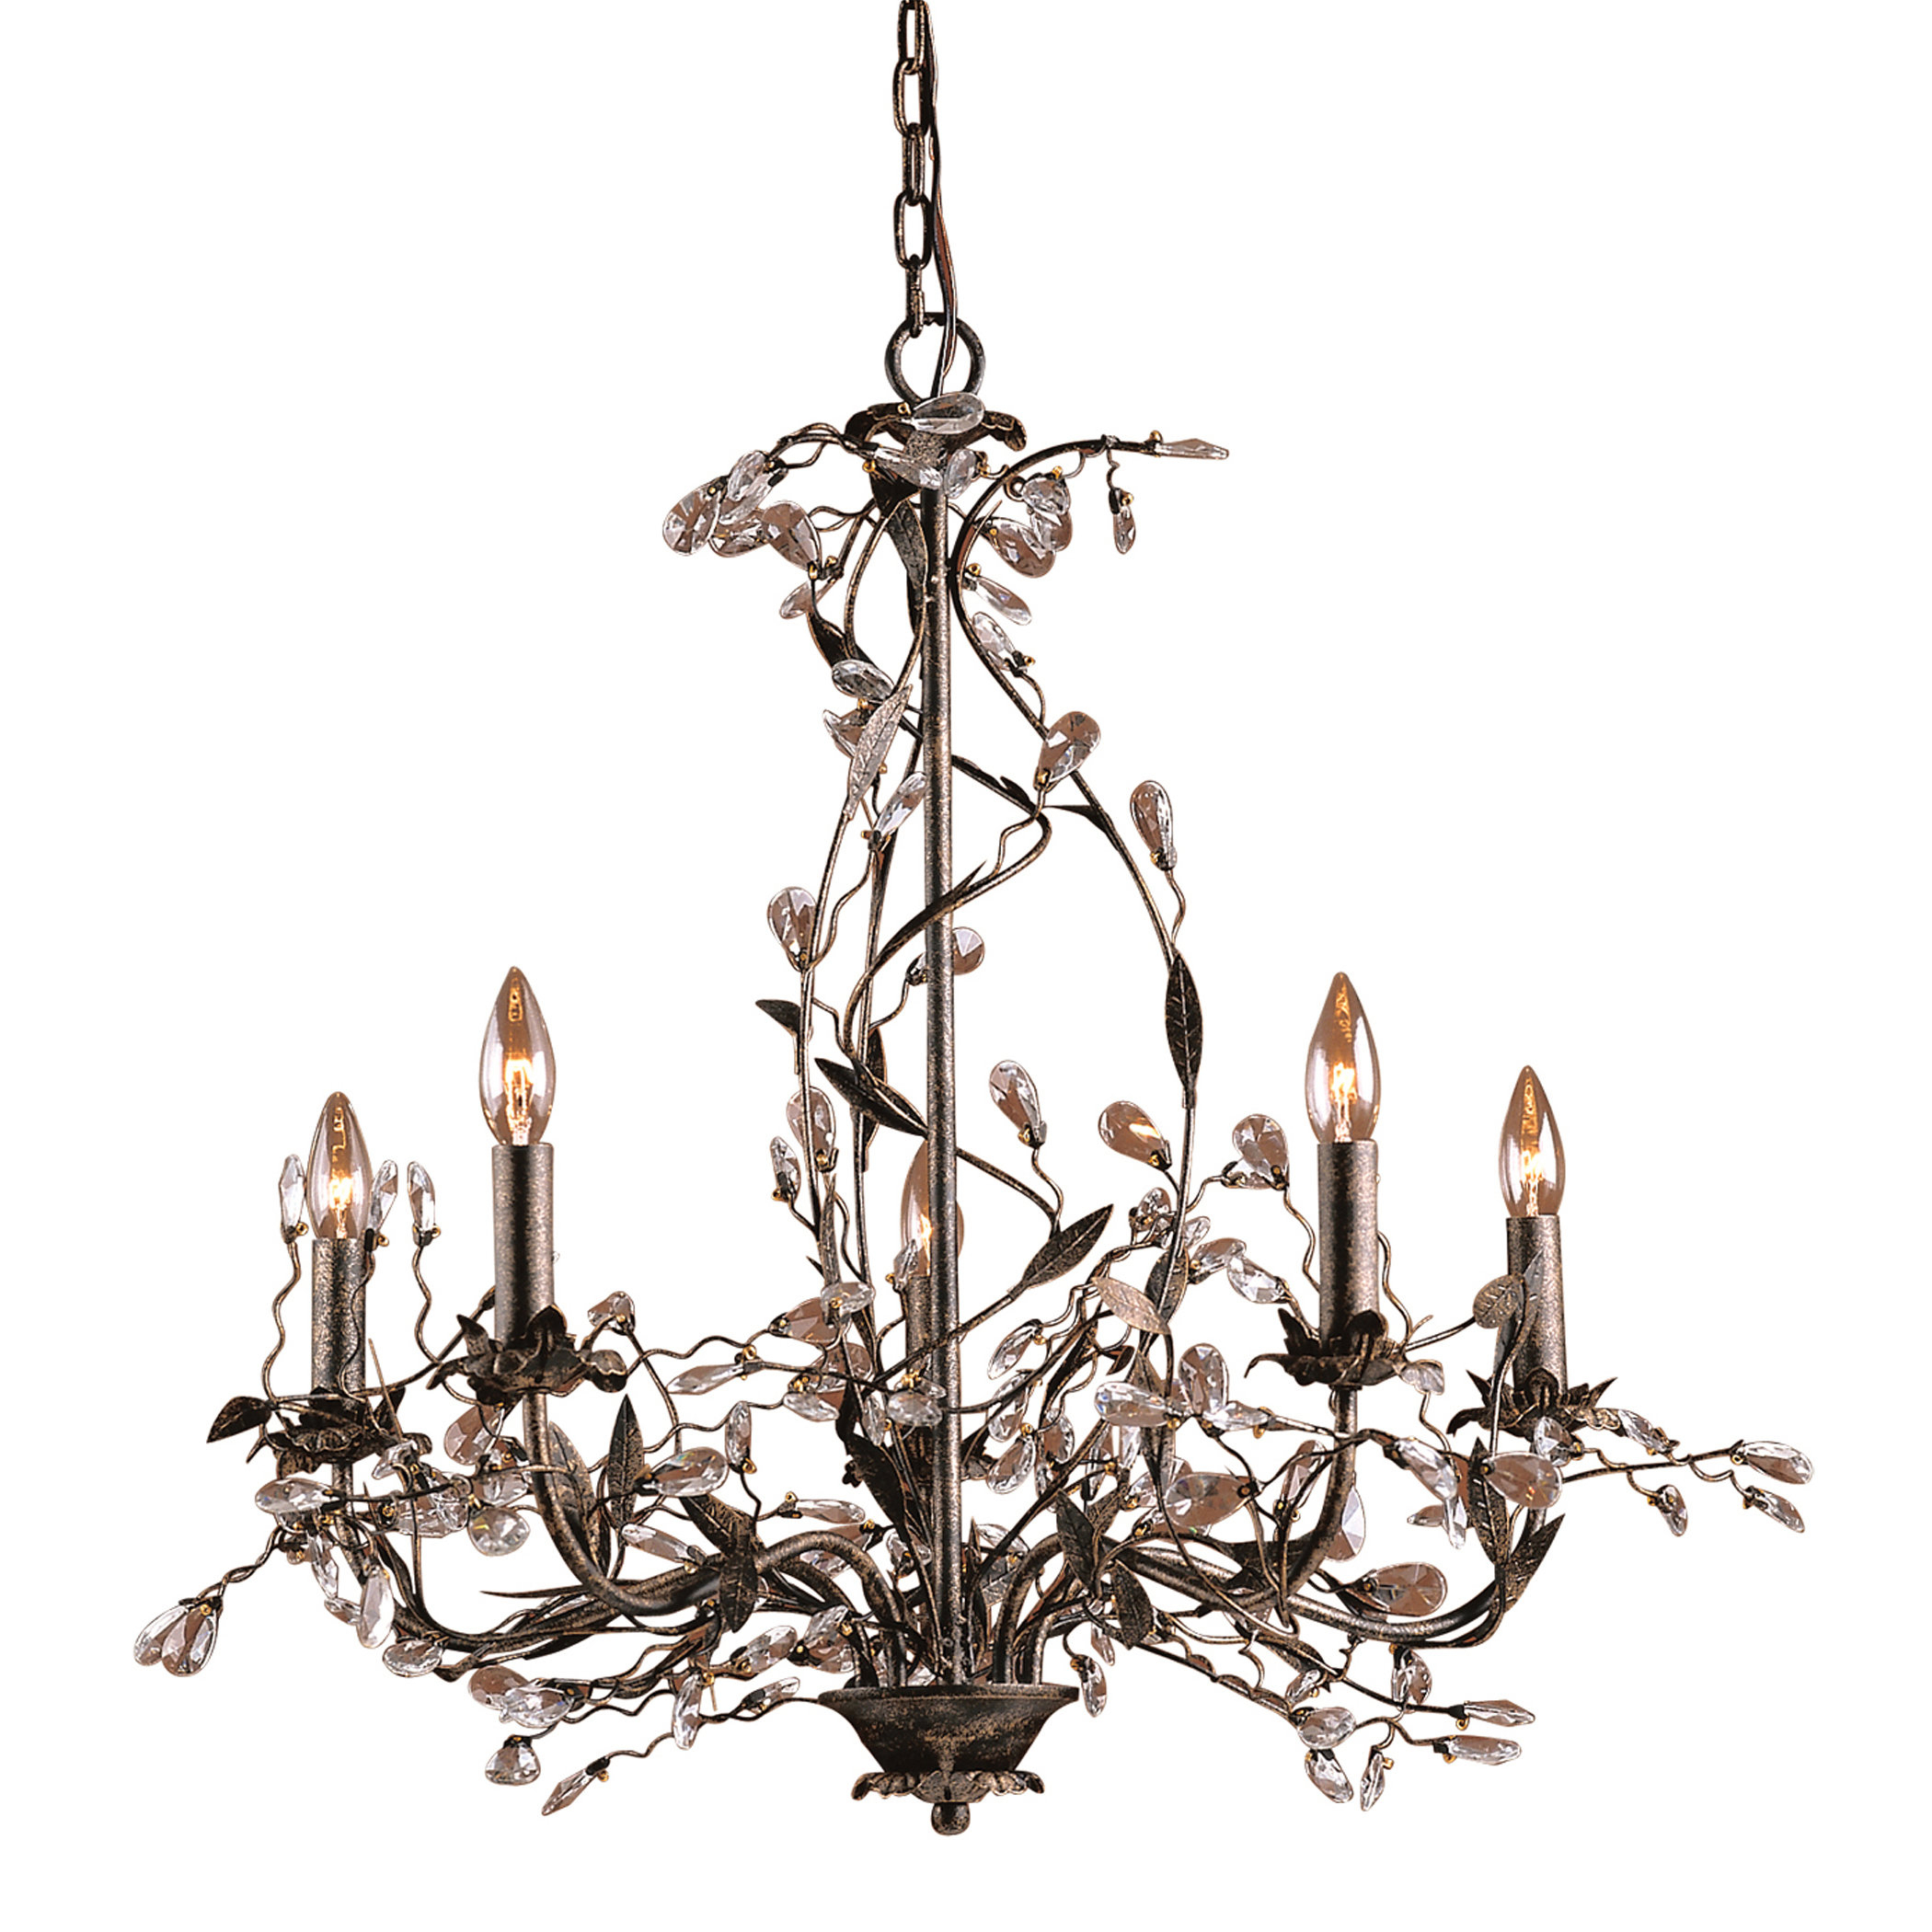 Lorraine 5 Light Chandelier Pertaining To Hesse 5 Light Candle Style Chandeliers (View 21 of 30)